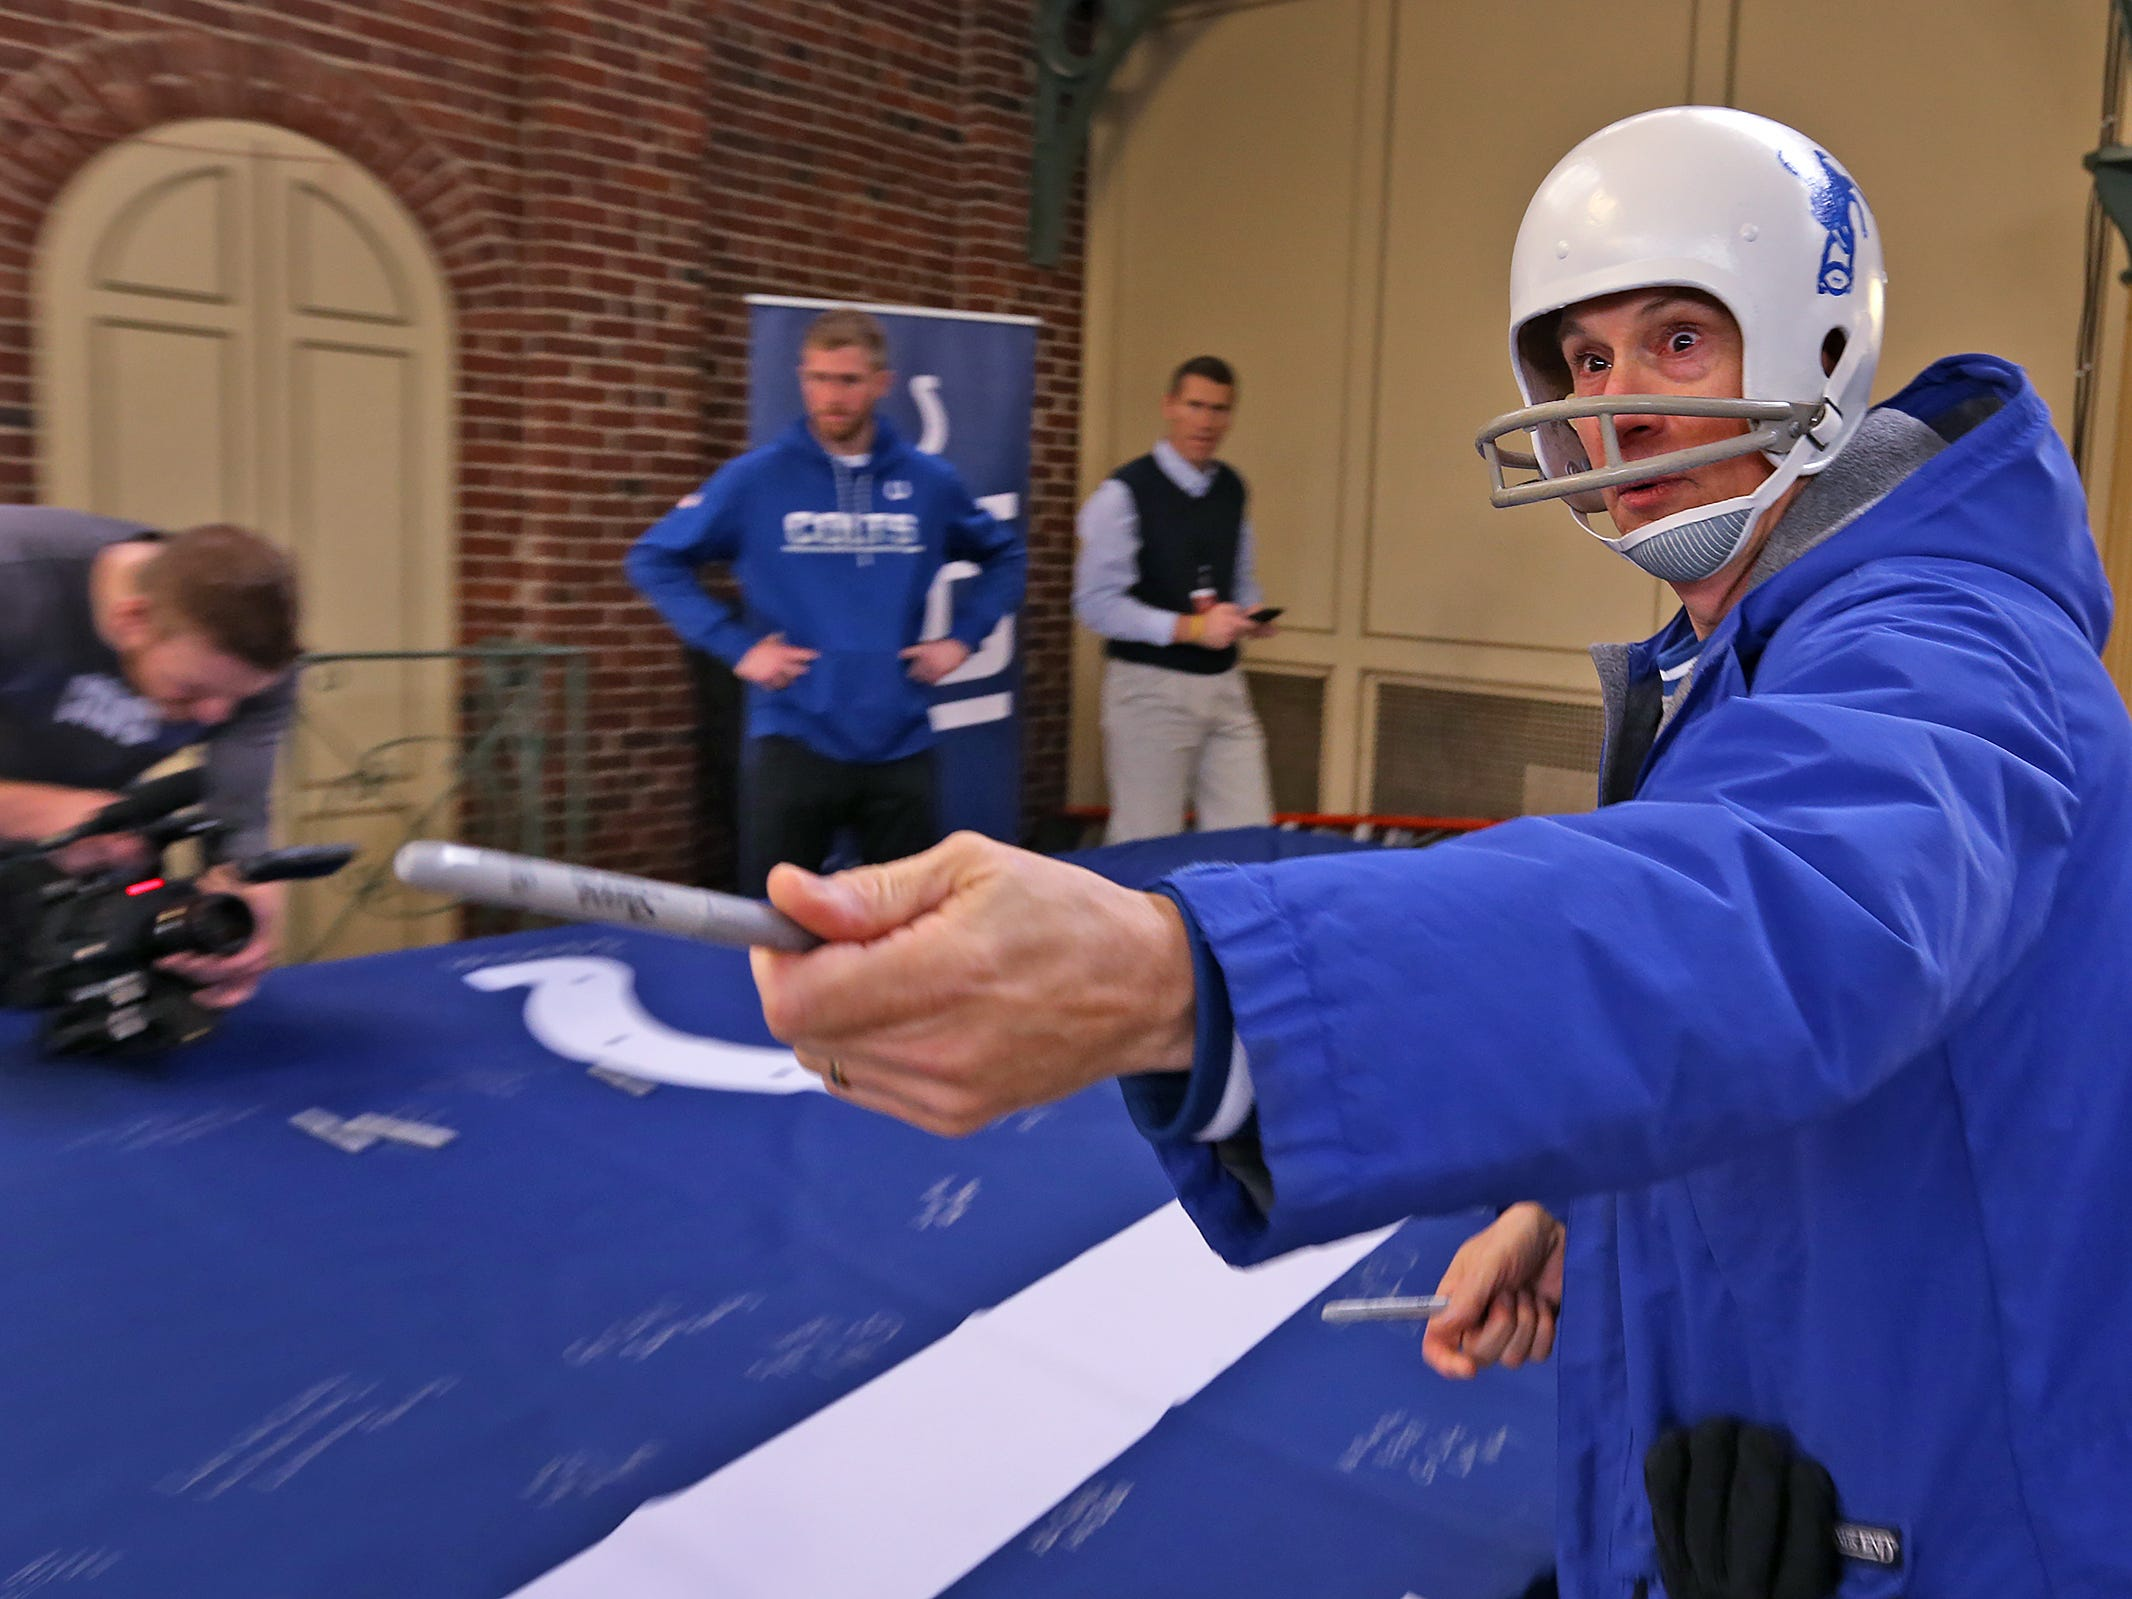 Colts fan Paul Diebold offers someone a pen as fans come together to sign a 1-0 banner for the Colts at City Market, Thursday, Jan. 10, 2019.  The banner will be displayed for the team to see at the airport as they head off to their Kansas City playoff game.